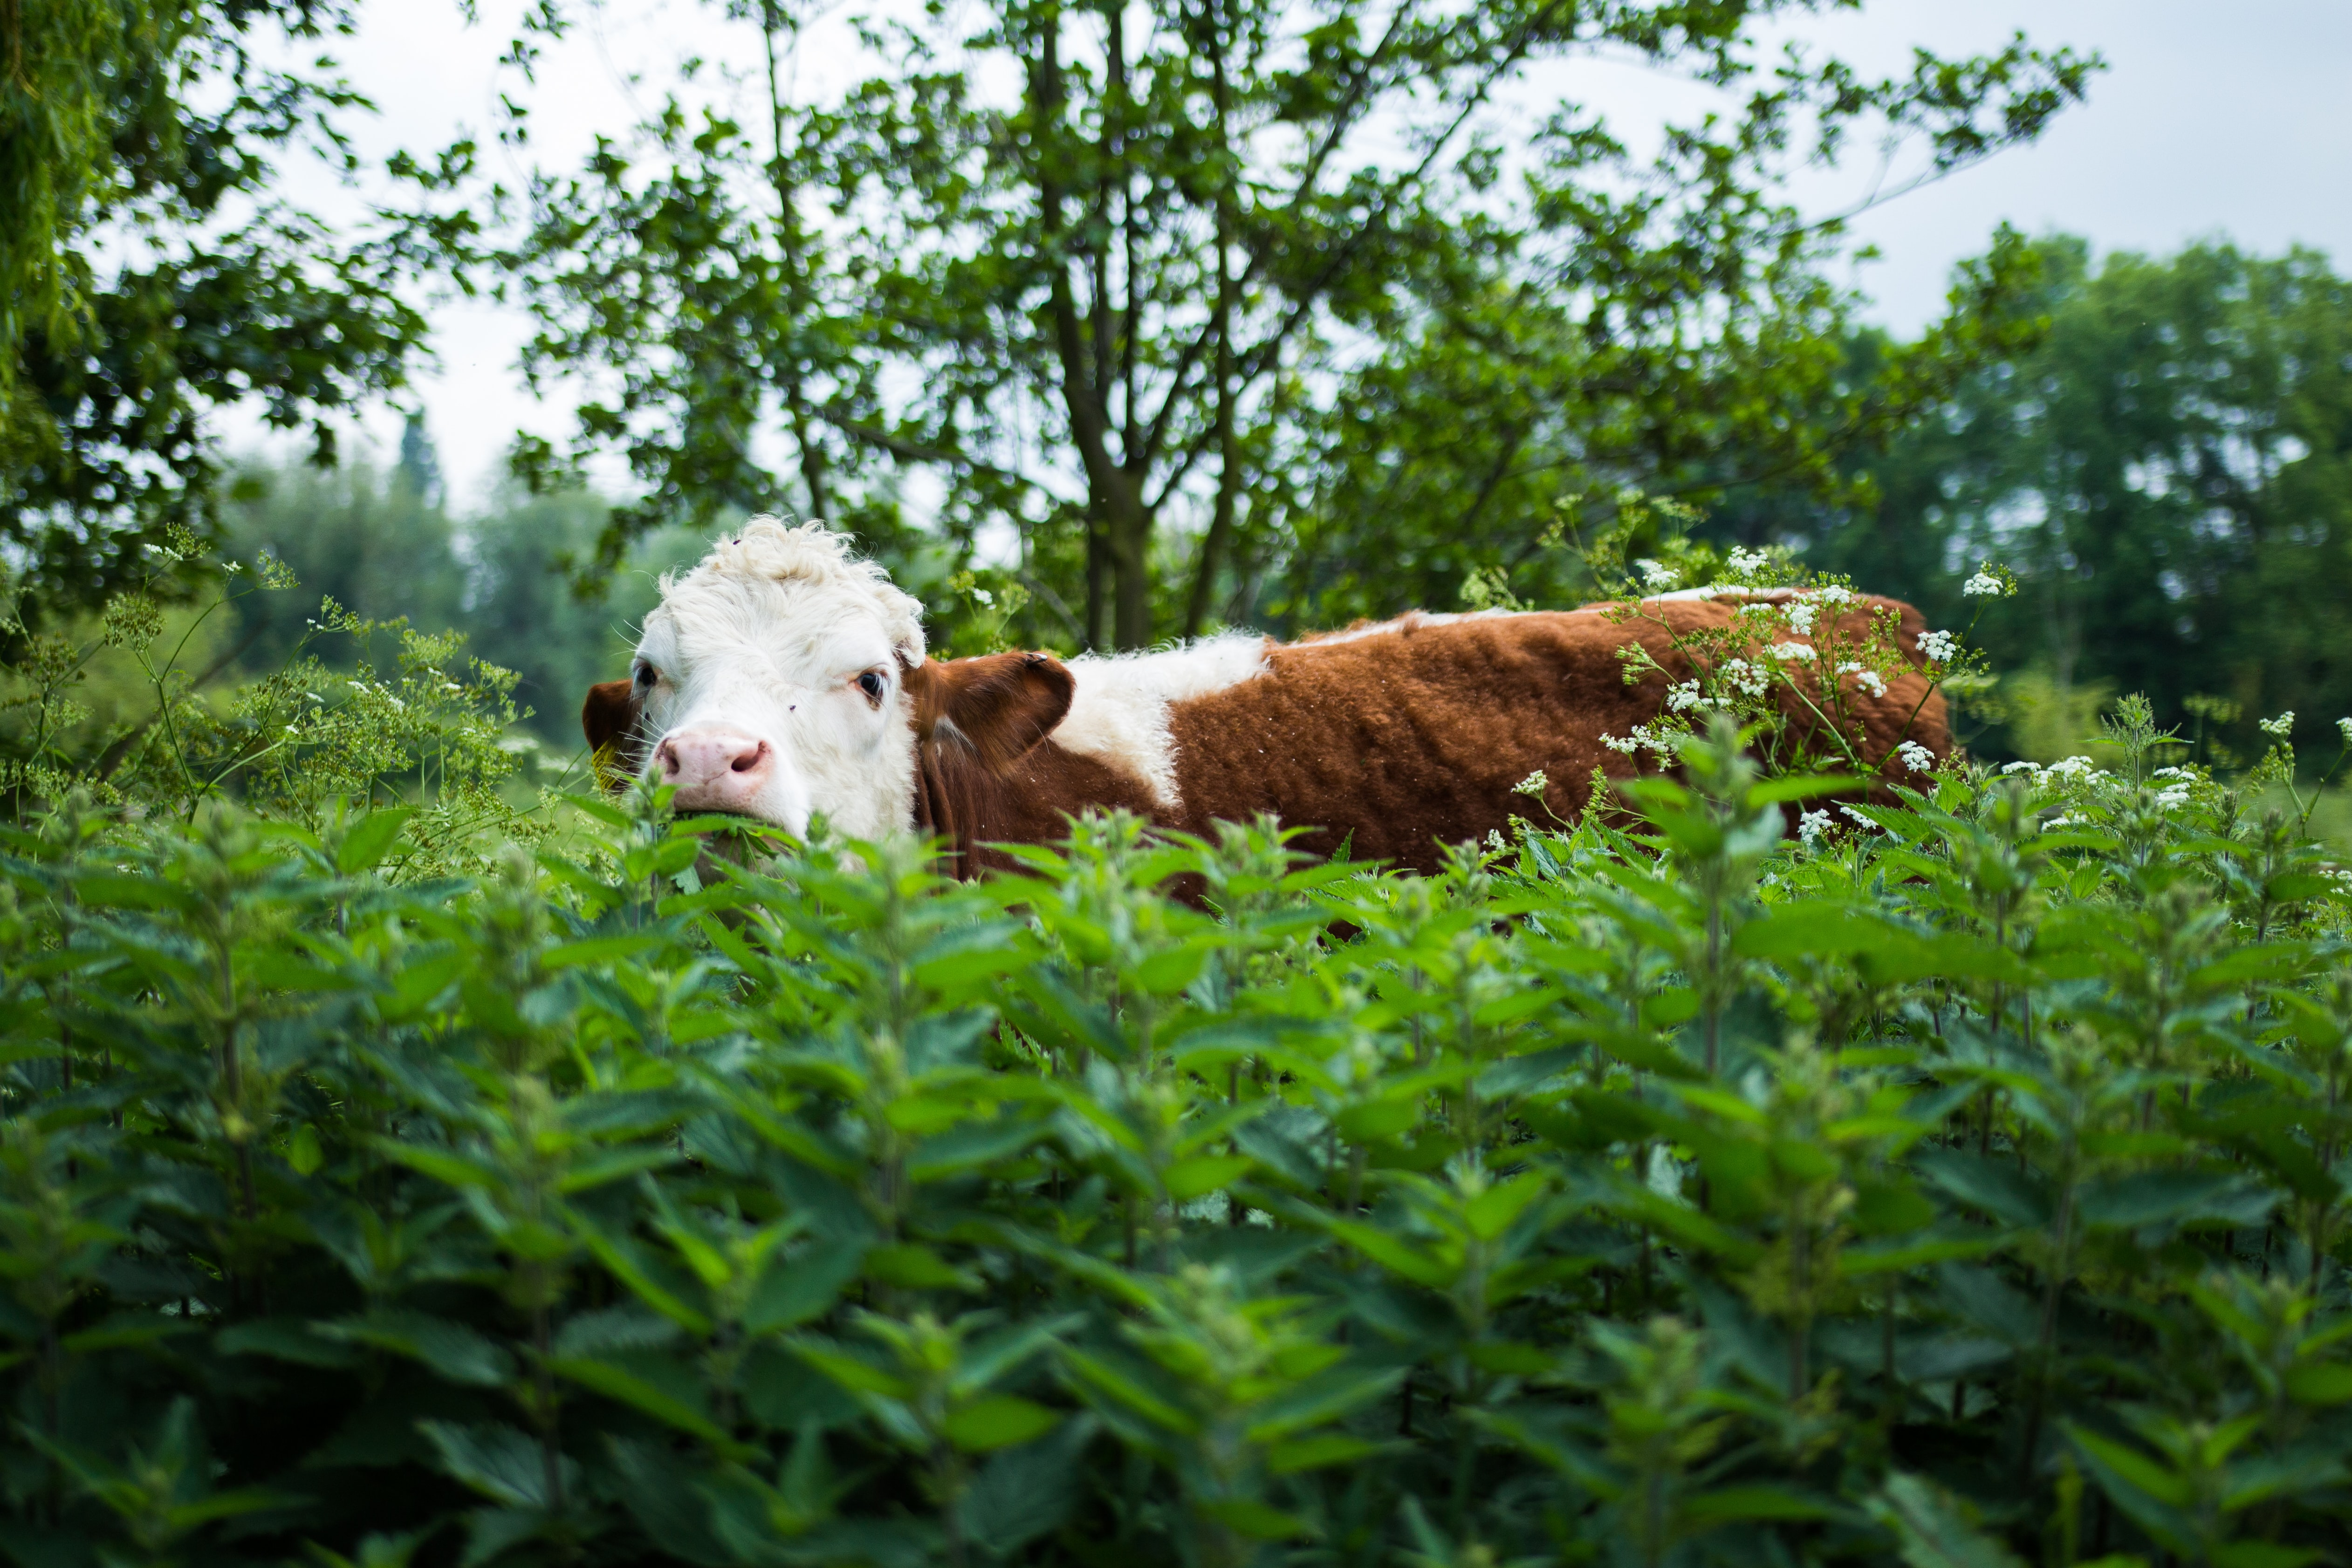 brown and white cow standing on green leafed plants